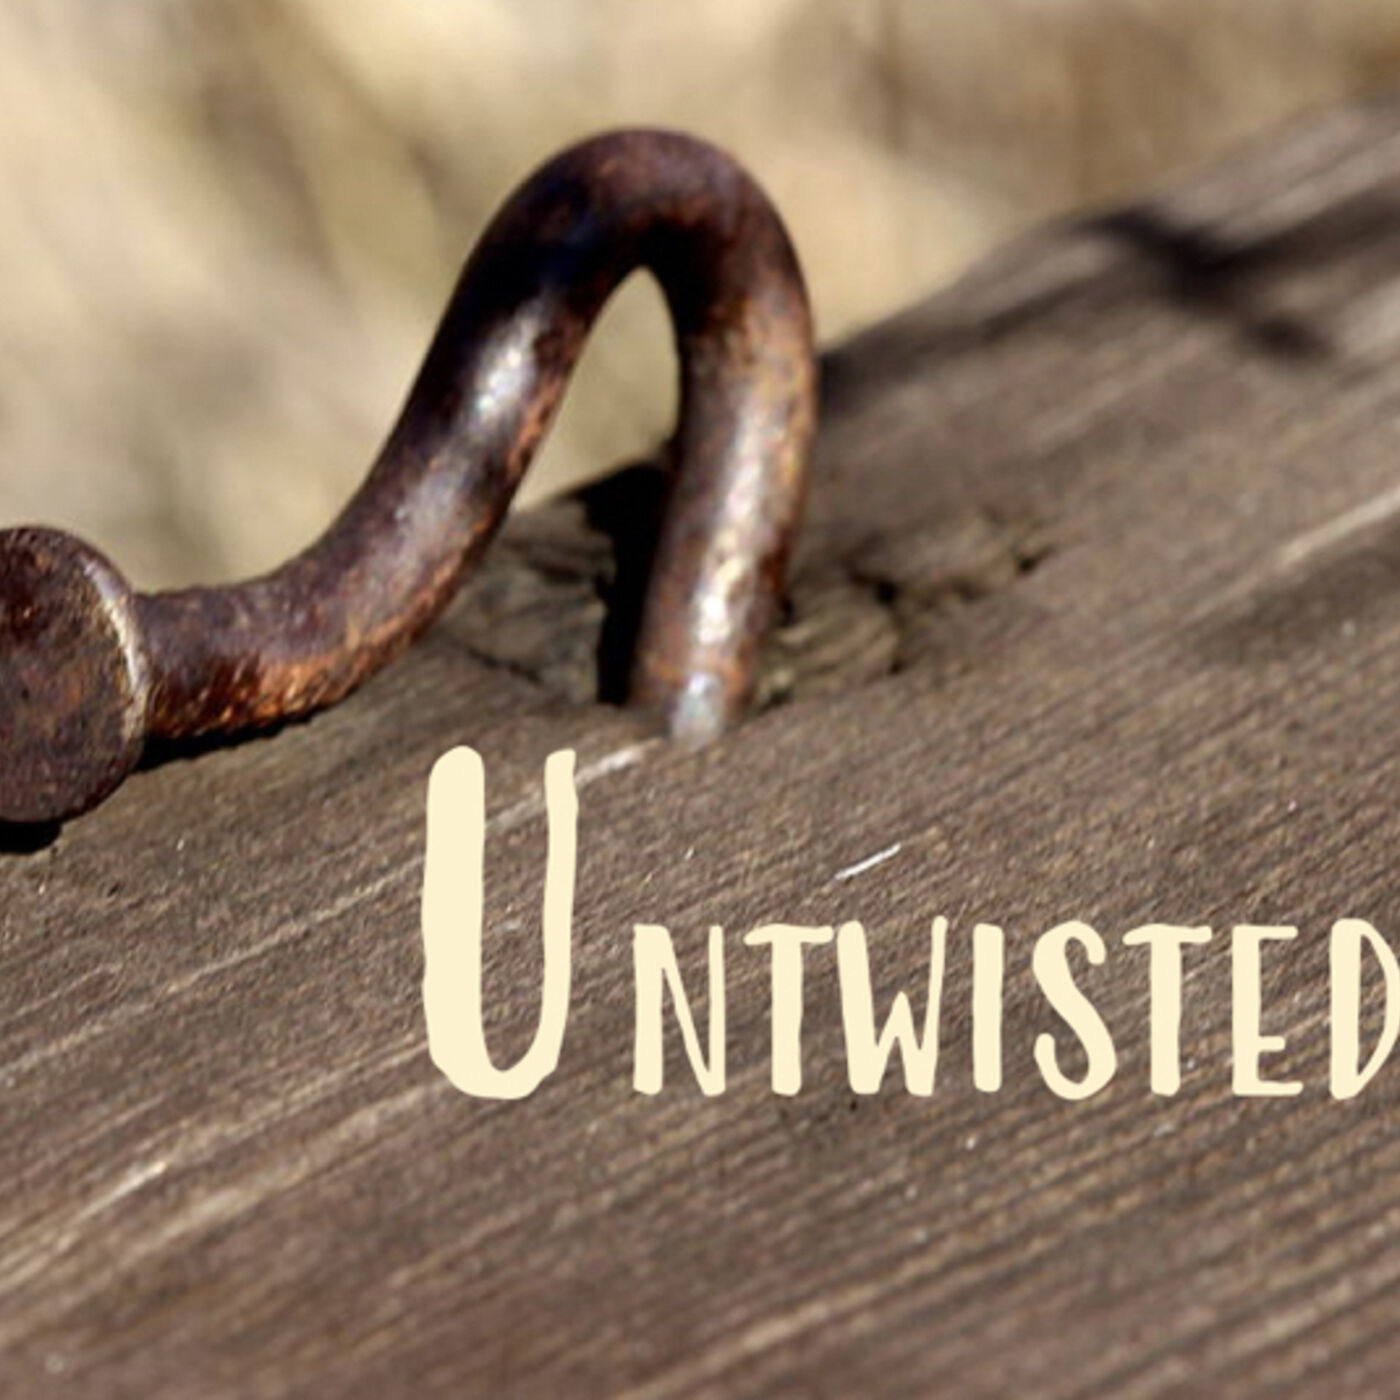 Untwisted: Real Strength (Gentleness)